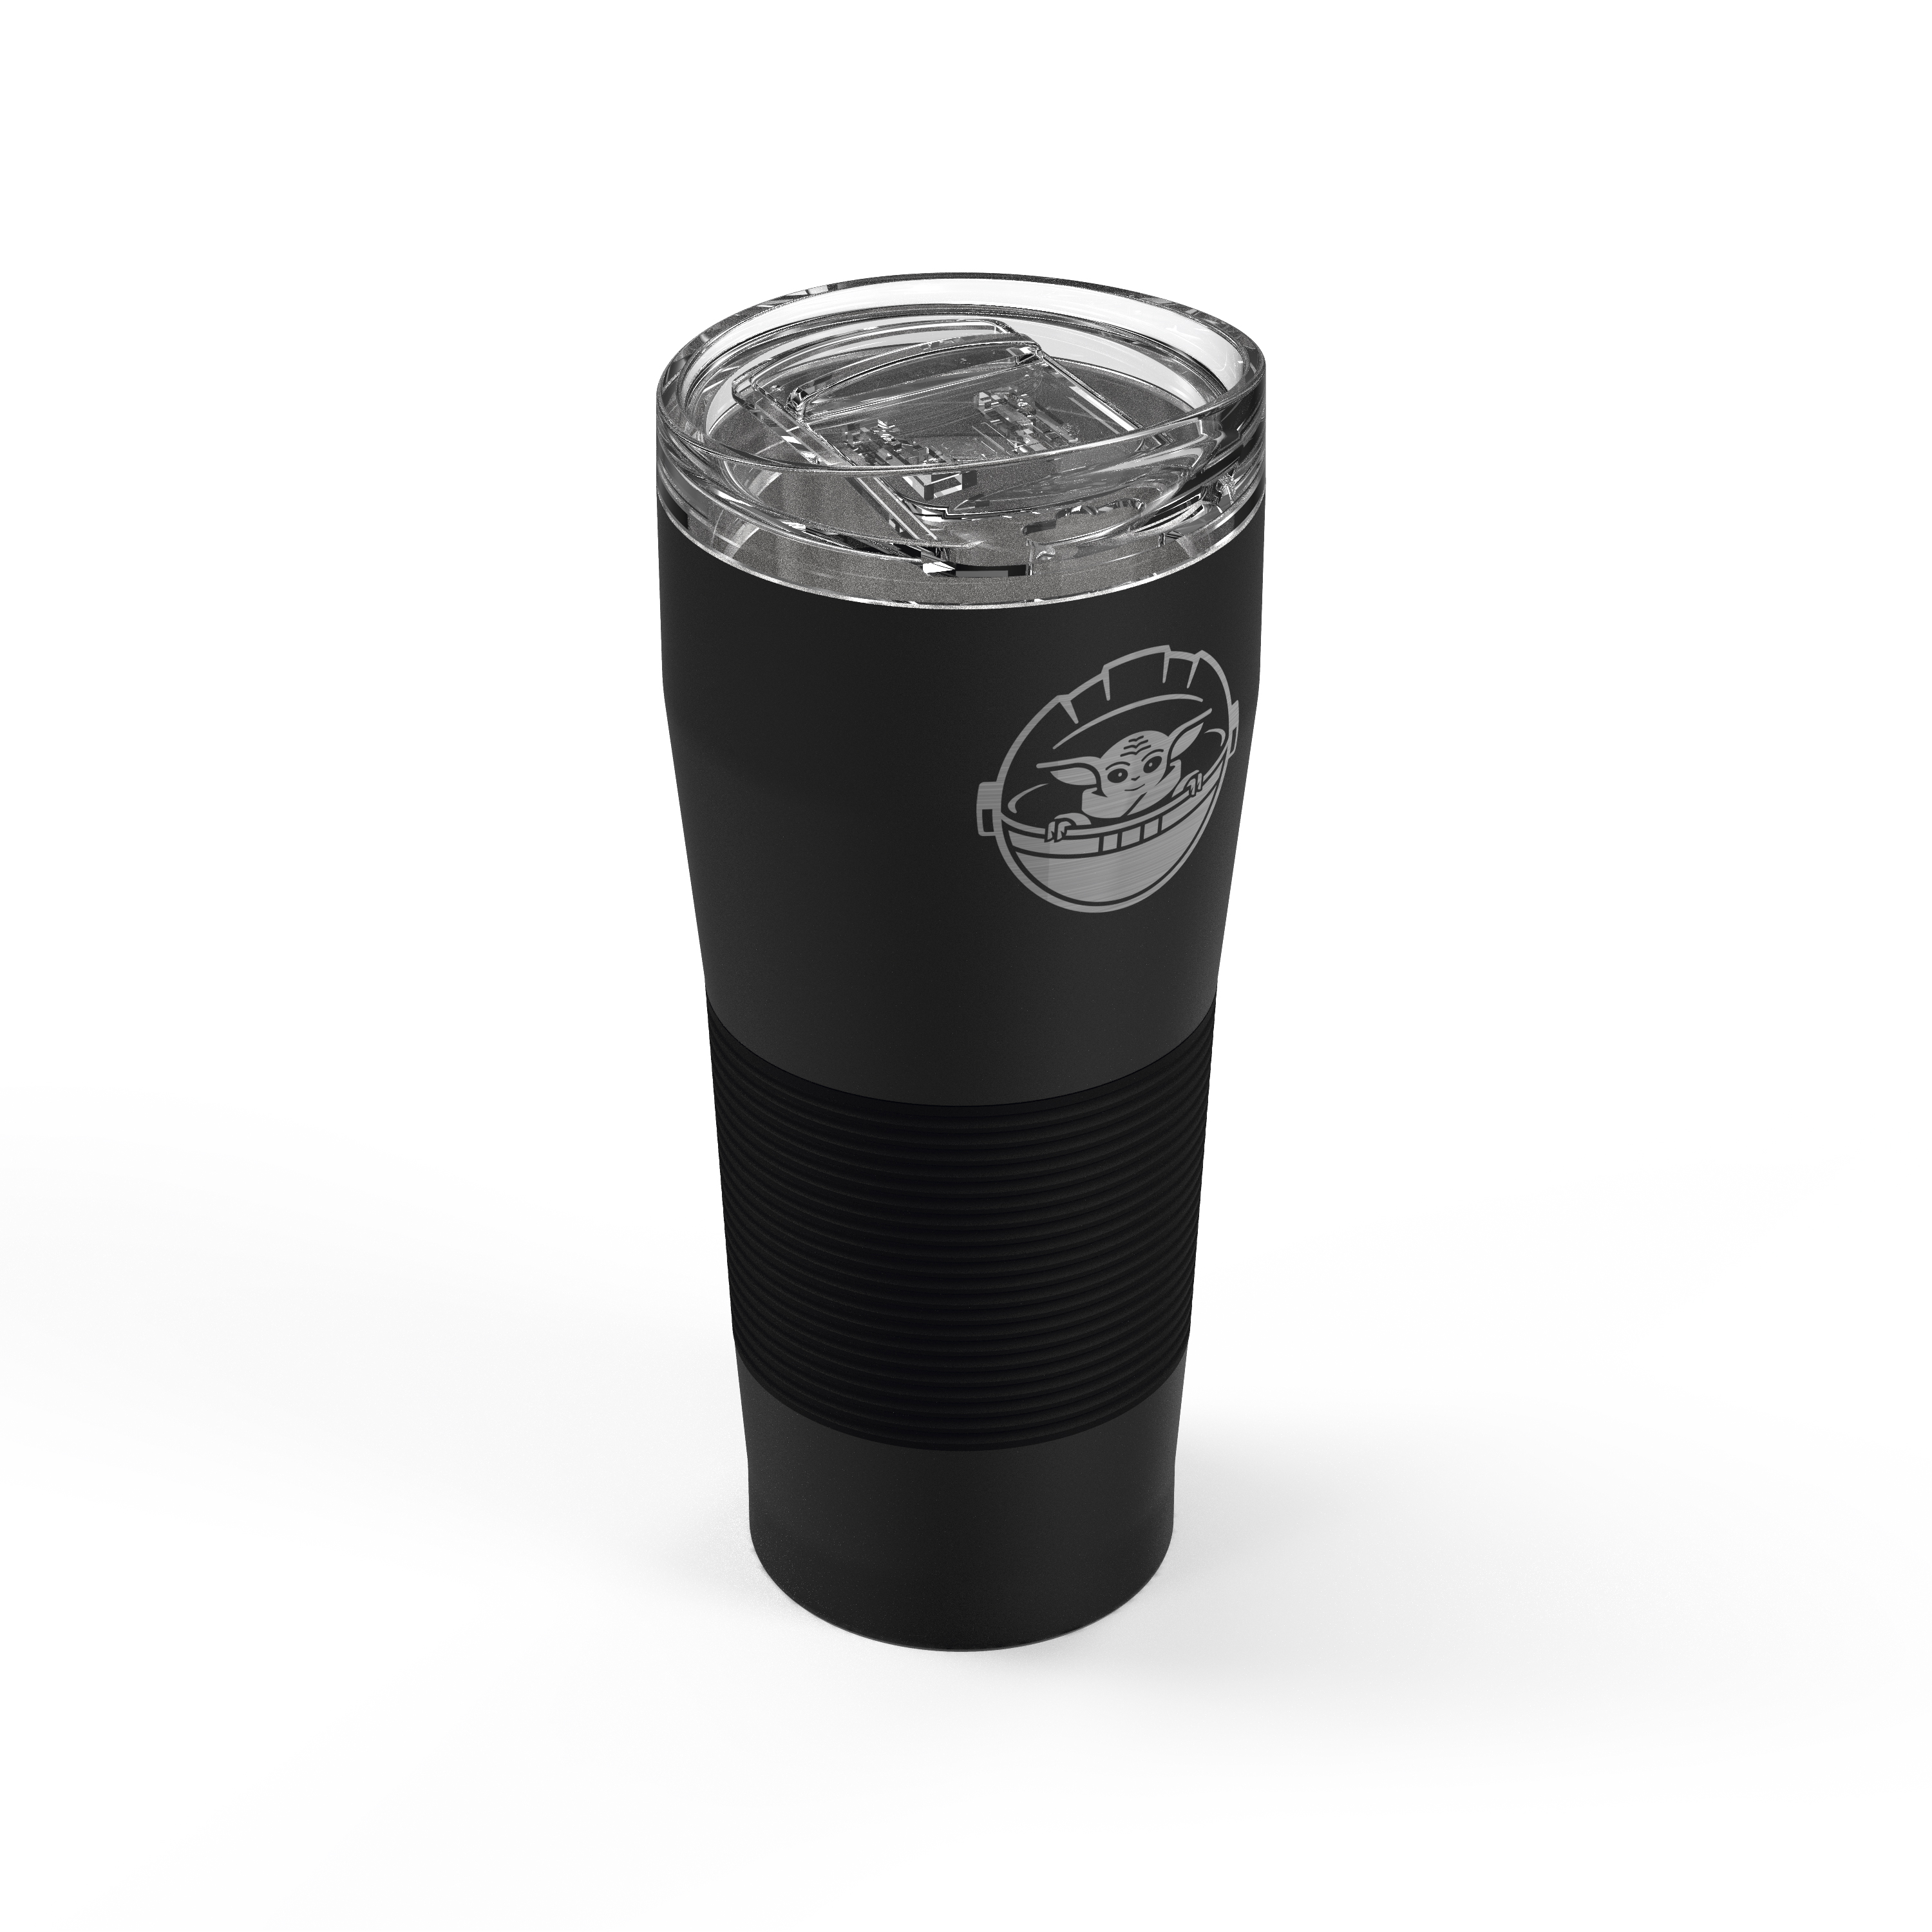 Star Wars: The Mandalorian 28 ounce Vacuum Insulated Stainless Steel Tumbler, The Child slideshow image 2